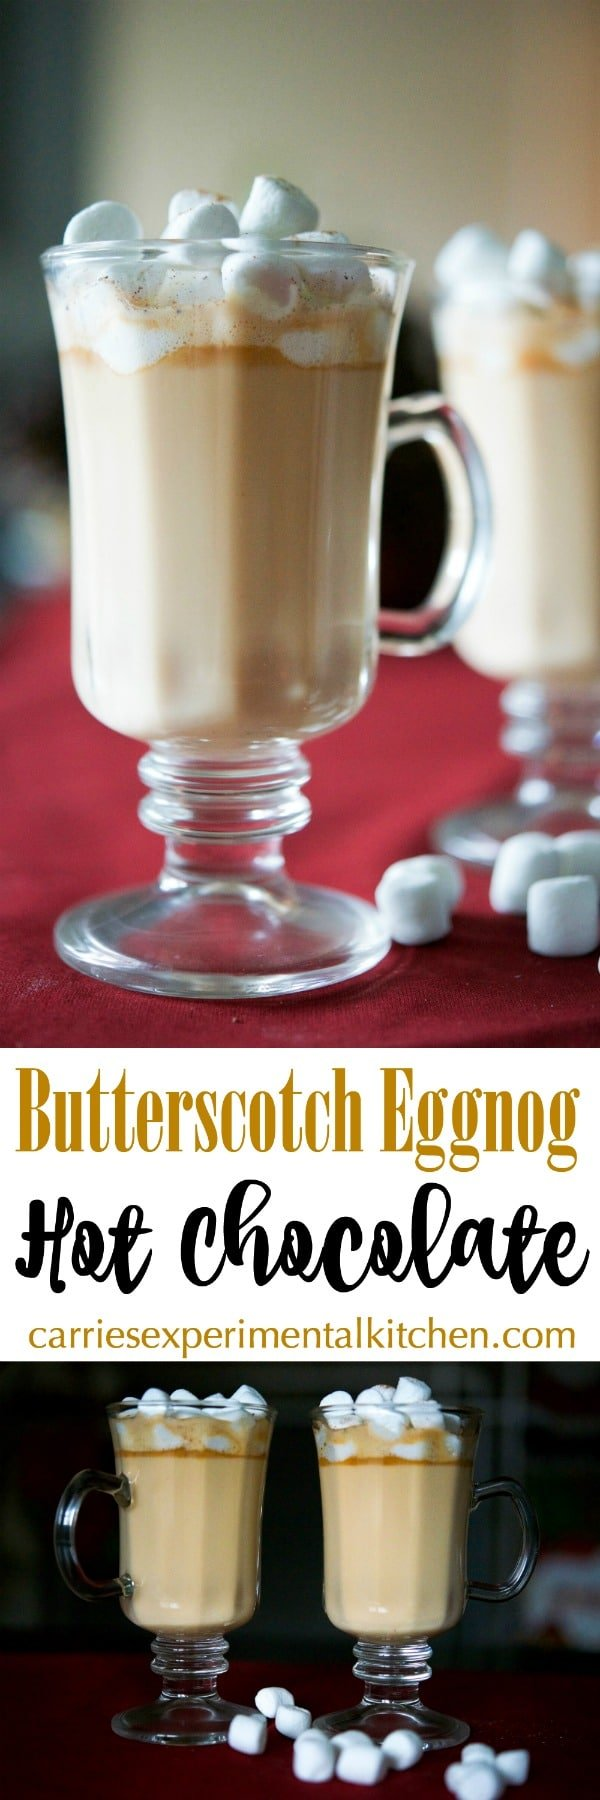 Butterscotch Eggnog Hot Chocolate made with butterscotch morsels, eggnog, milk, vanilla and ground nutmeg is sure to warm the soul during the cold winter months. #eggnog #hotchocolate #butterscotch #winter